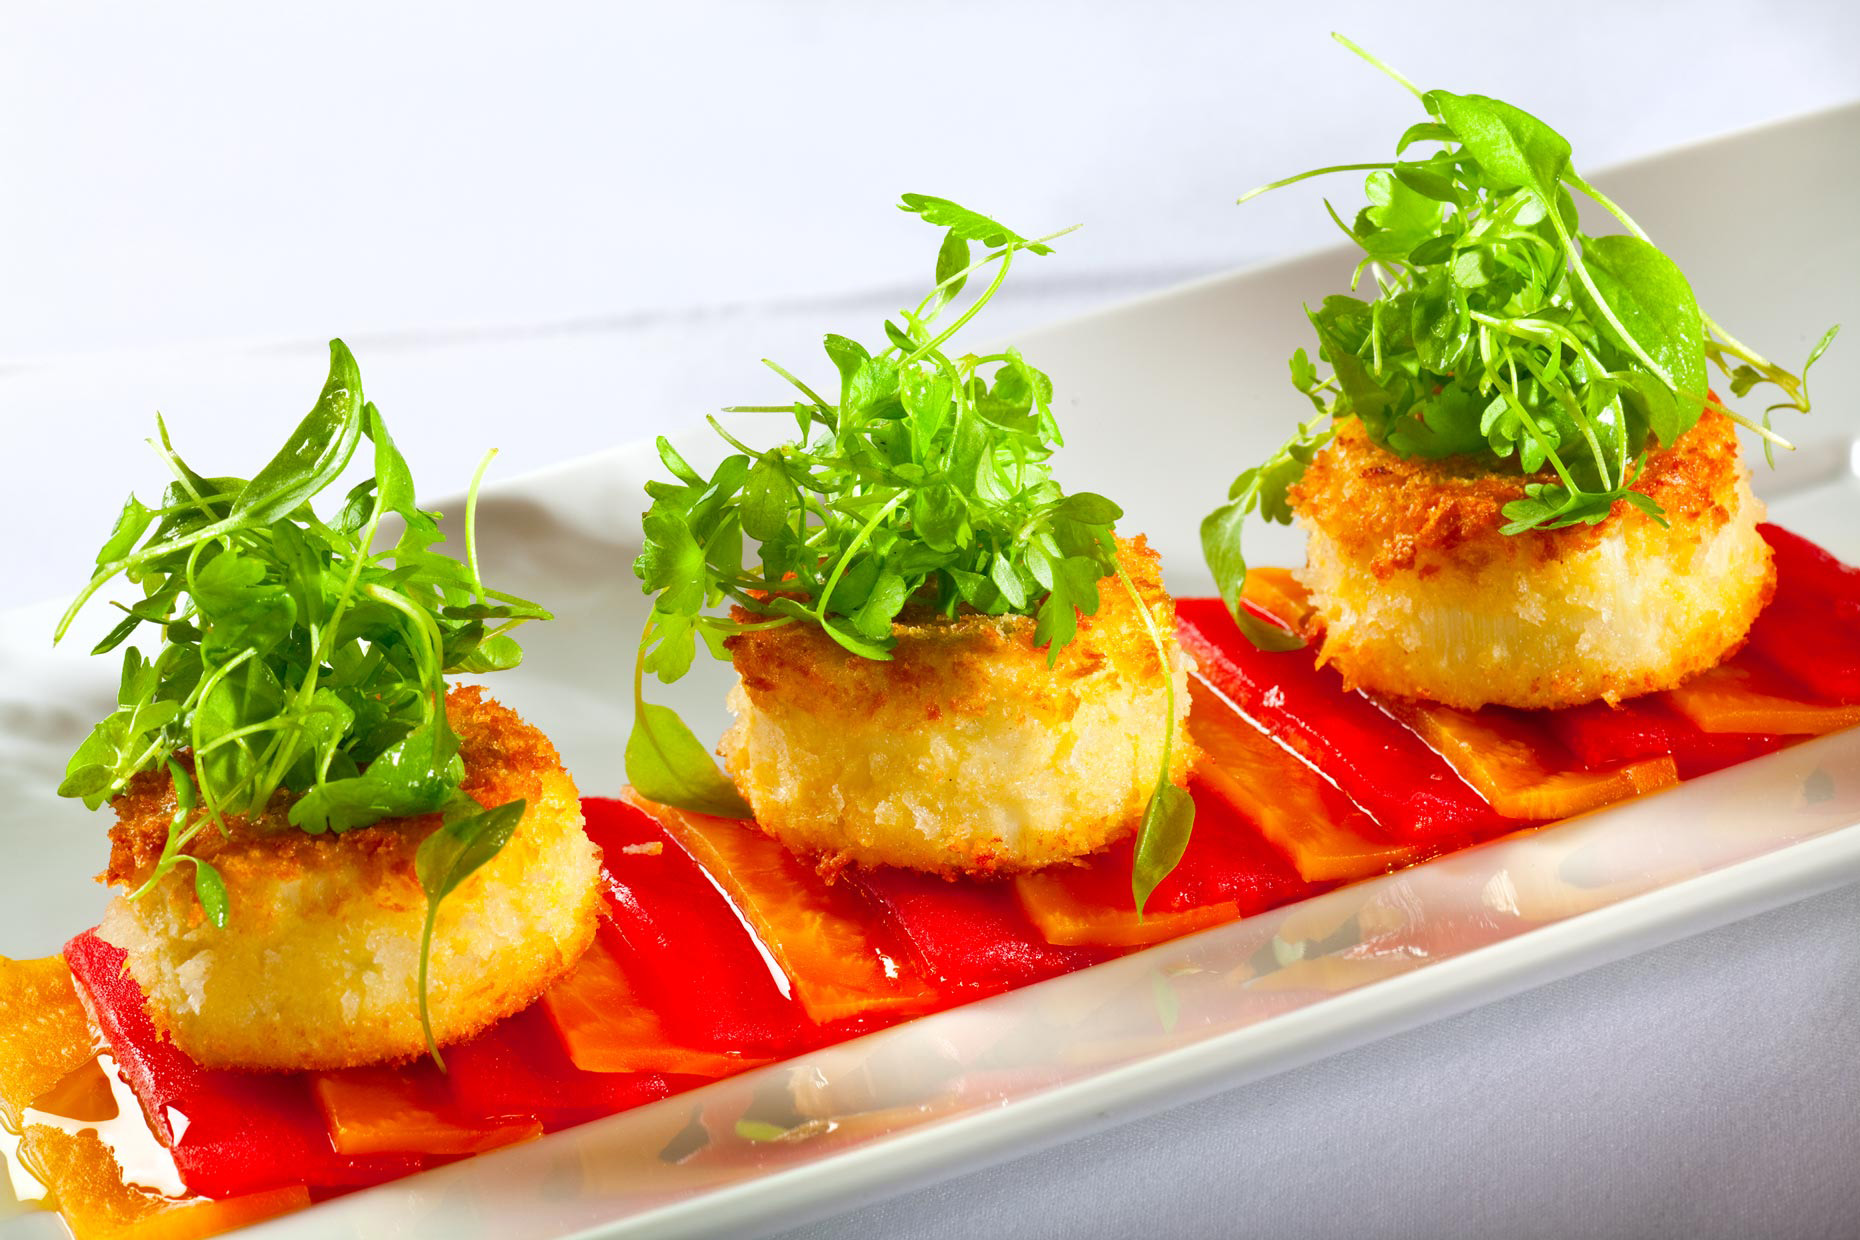 Food Photography | Crabcakes with microgreens on tomatoes